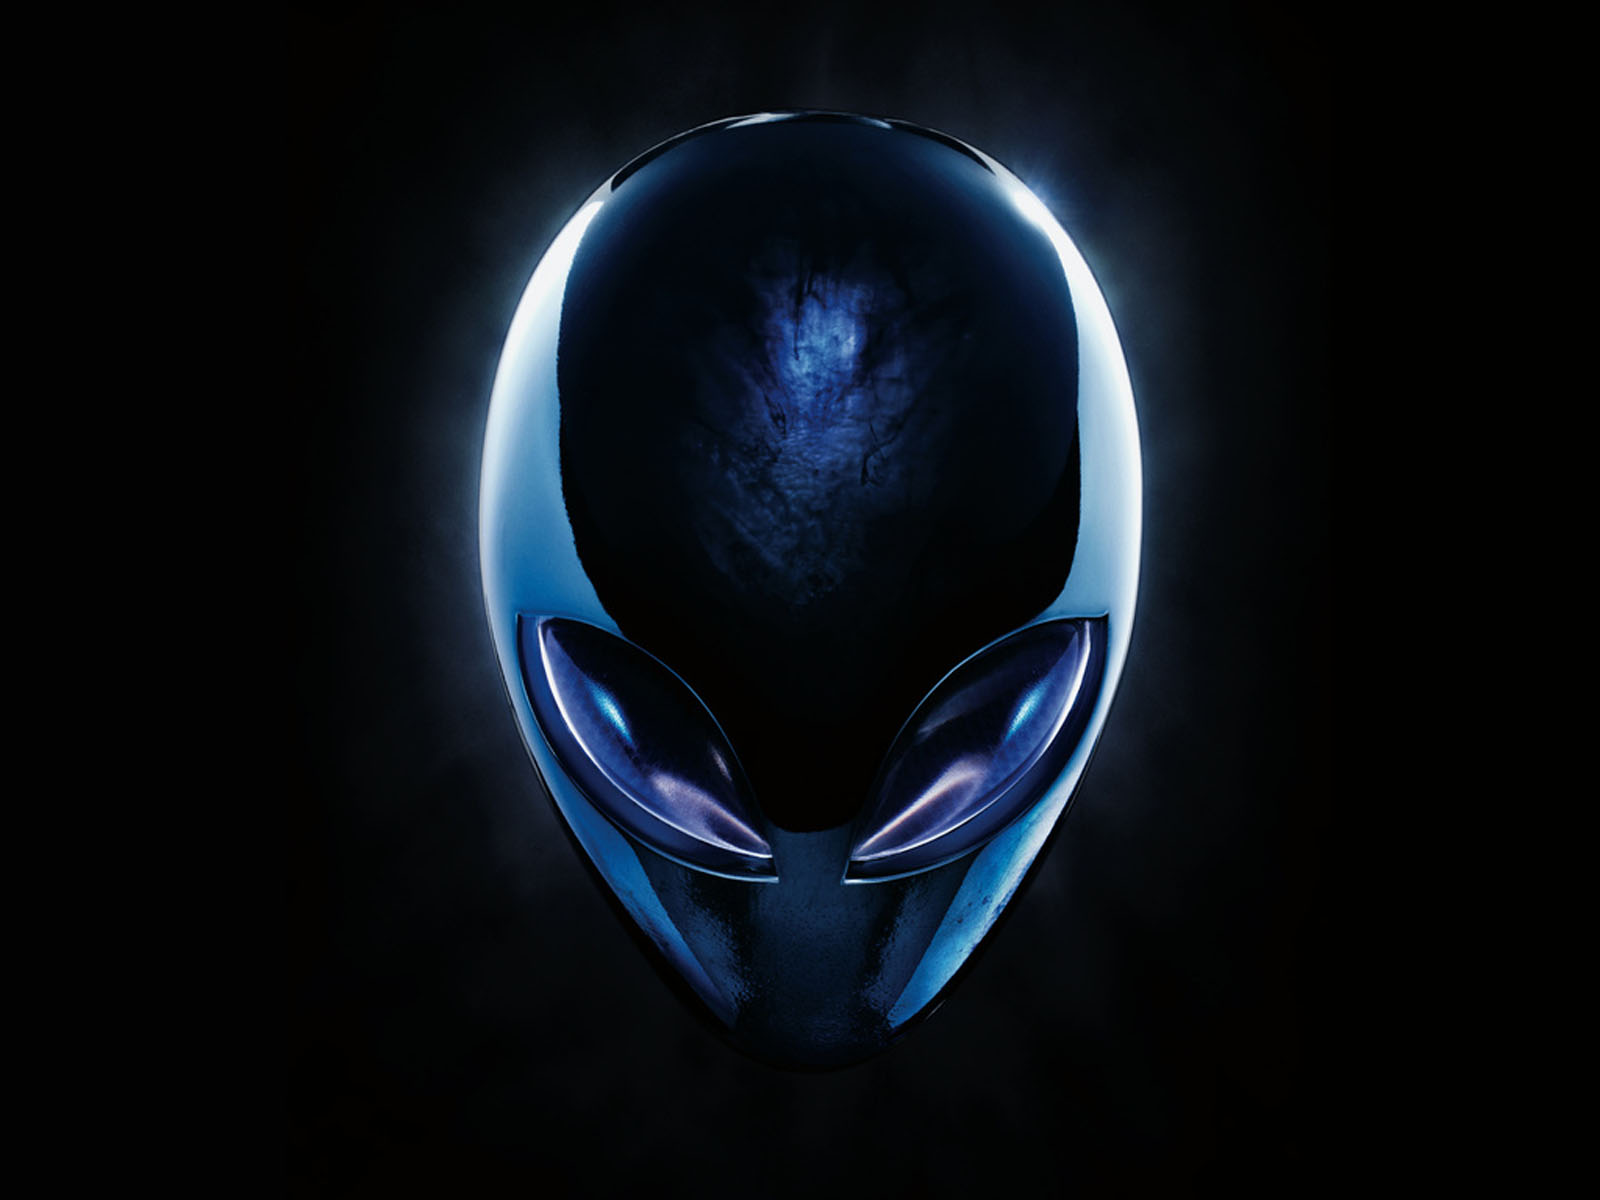 alien wallpaper